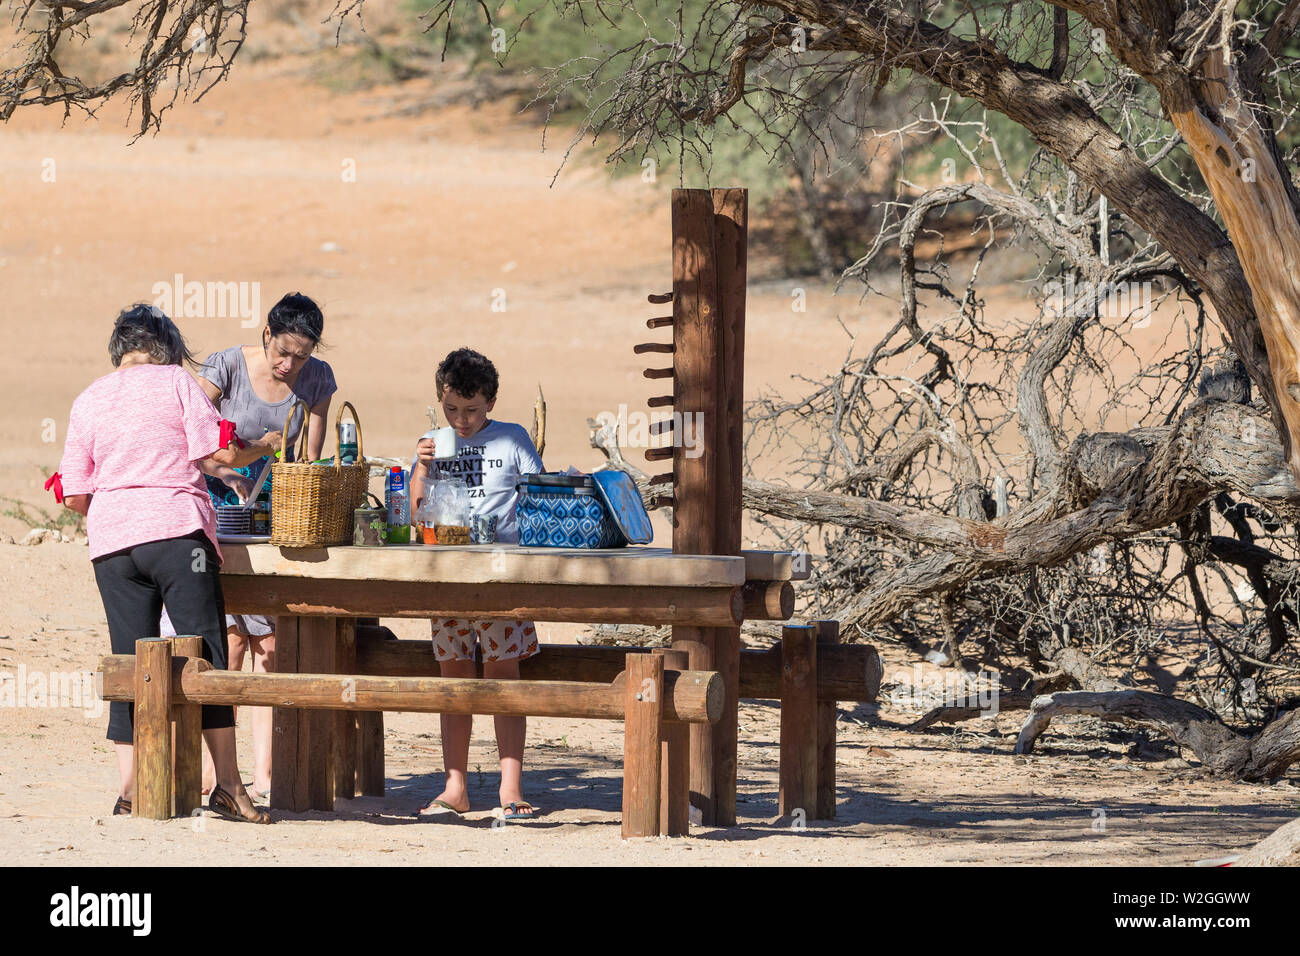 Remarkable Family Group At A Wooden Bench Table Preparing A Meal At A Beatyapartments Chair Design Images Beatyapartmentscom